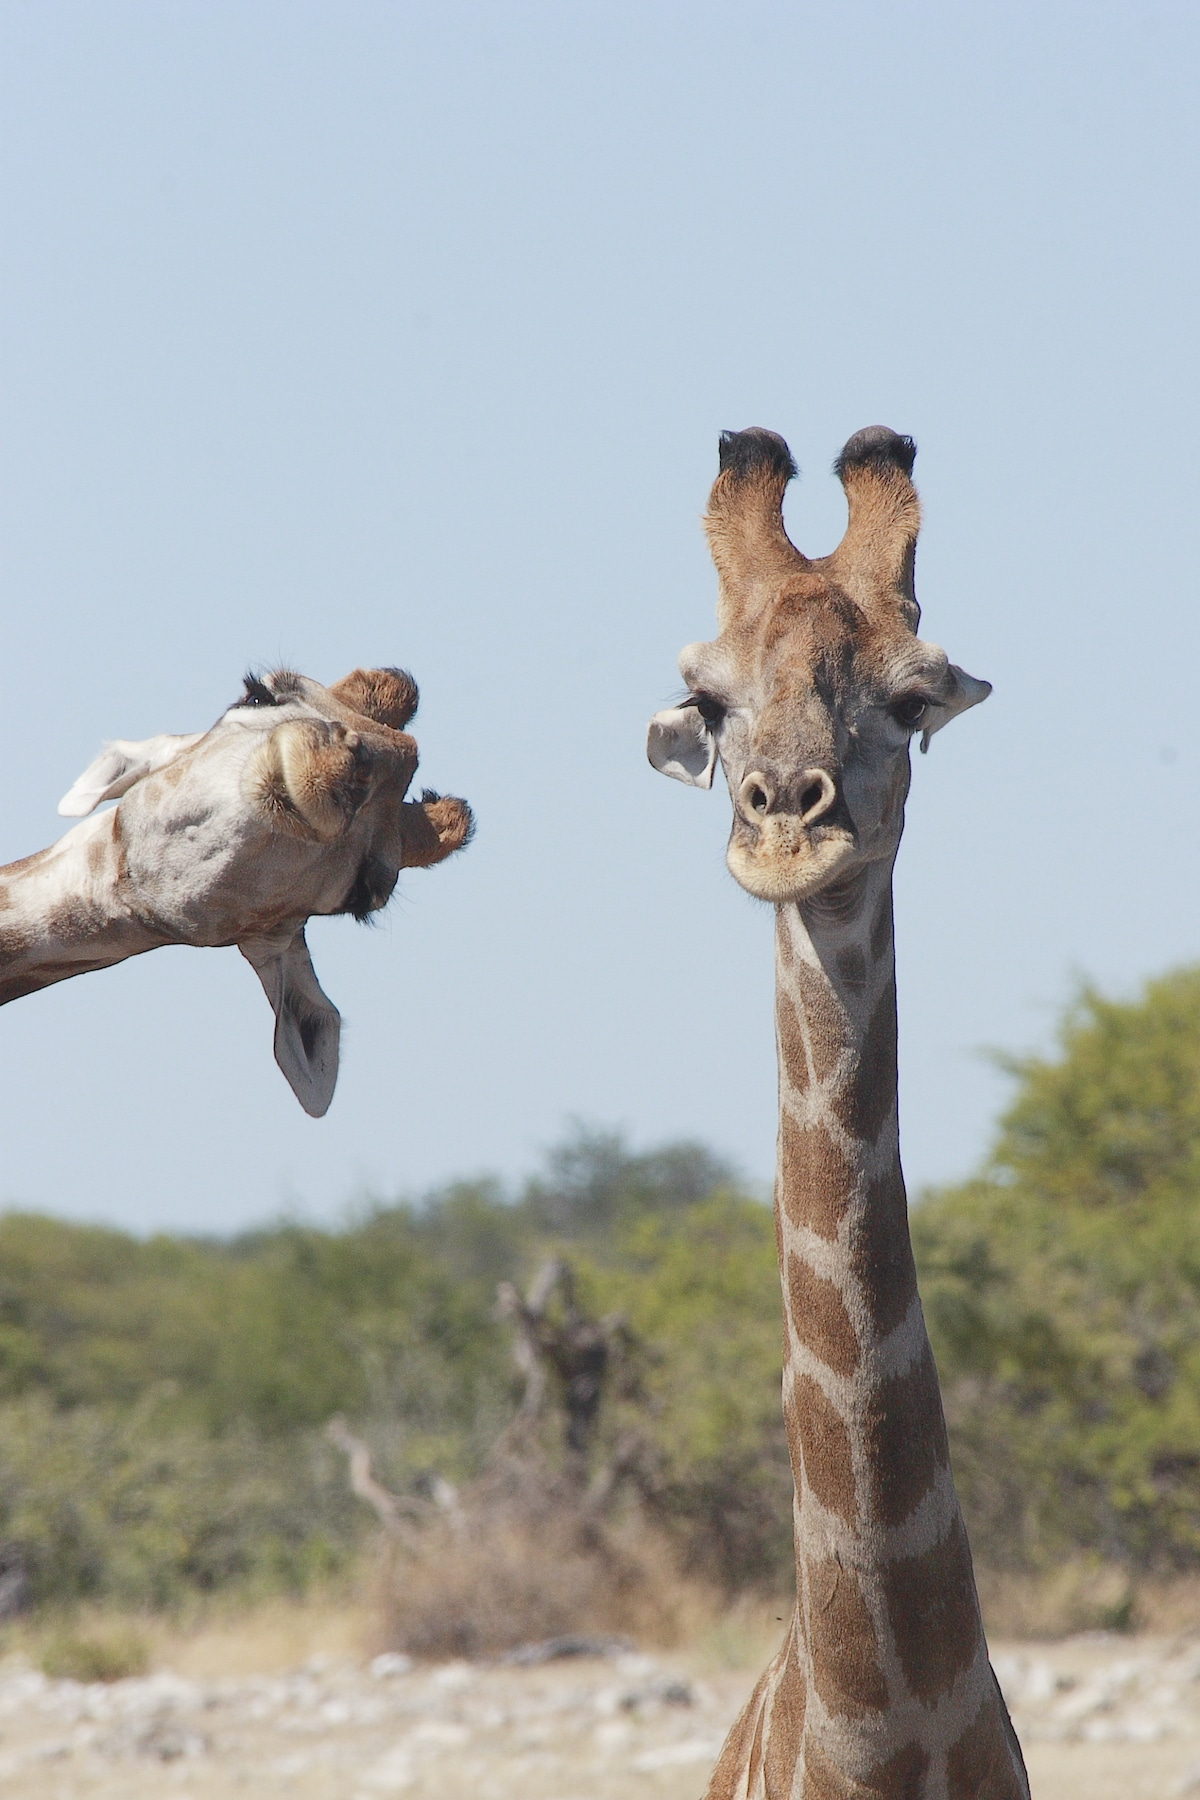 Two Giraffes at the Etosha National Park